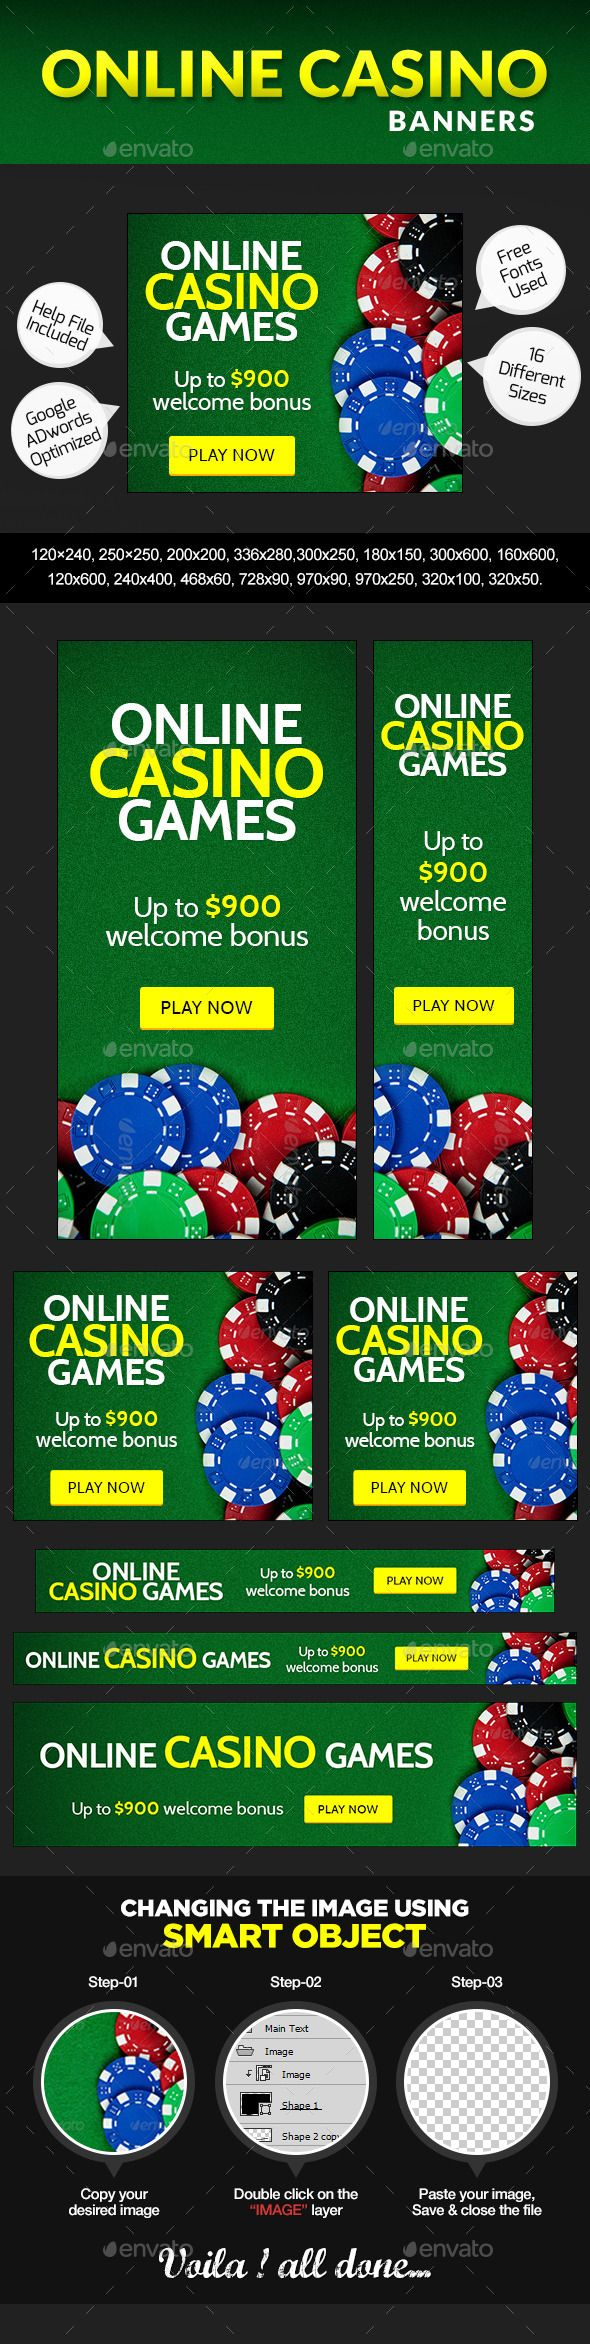 Casino casino game game online play welcome owl club casino spokane wa poker